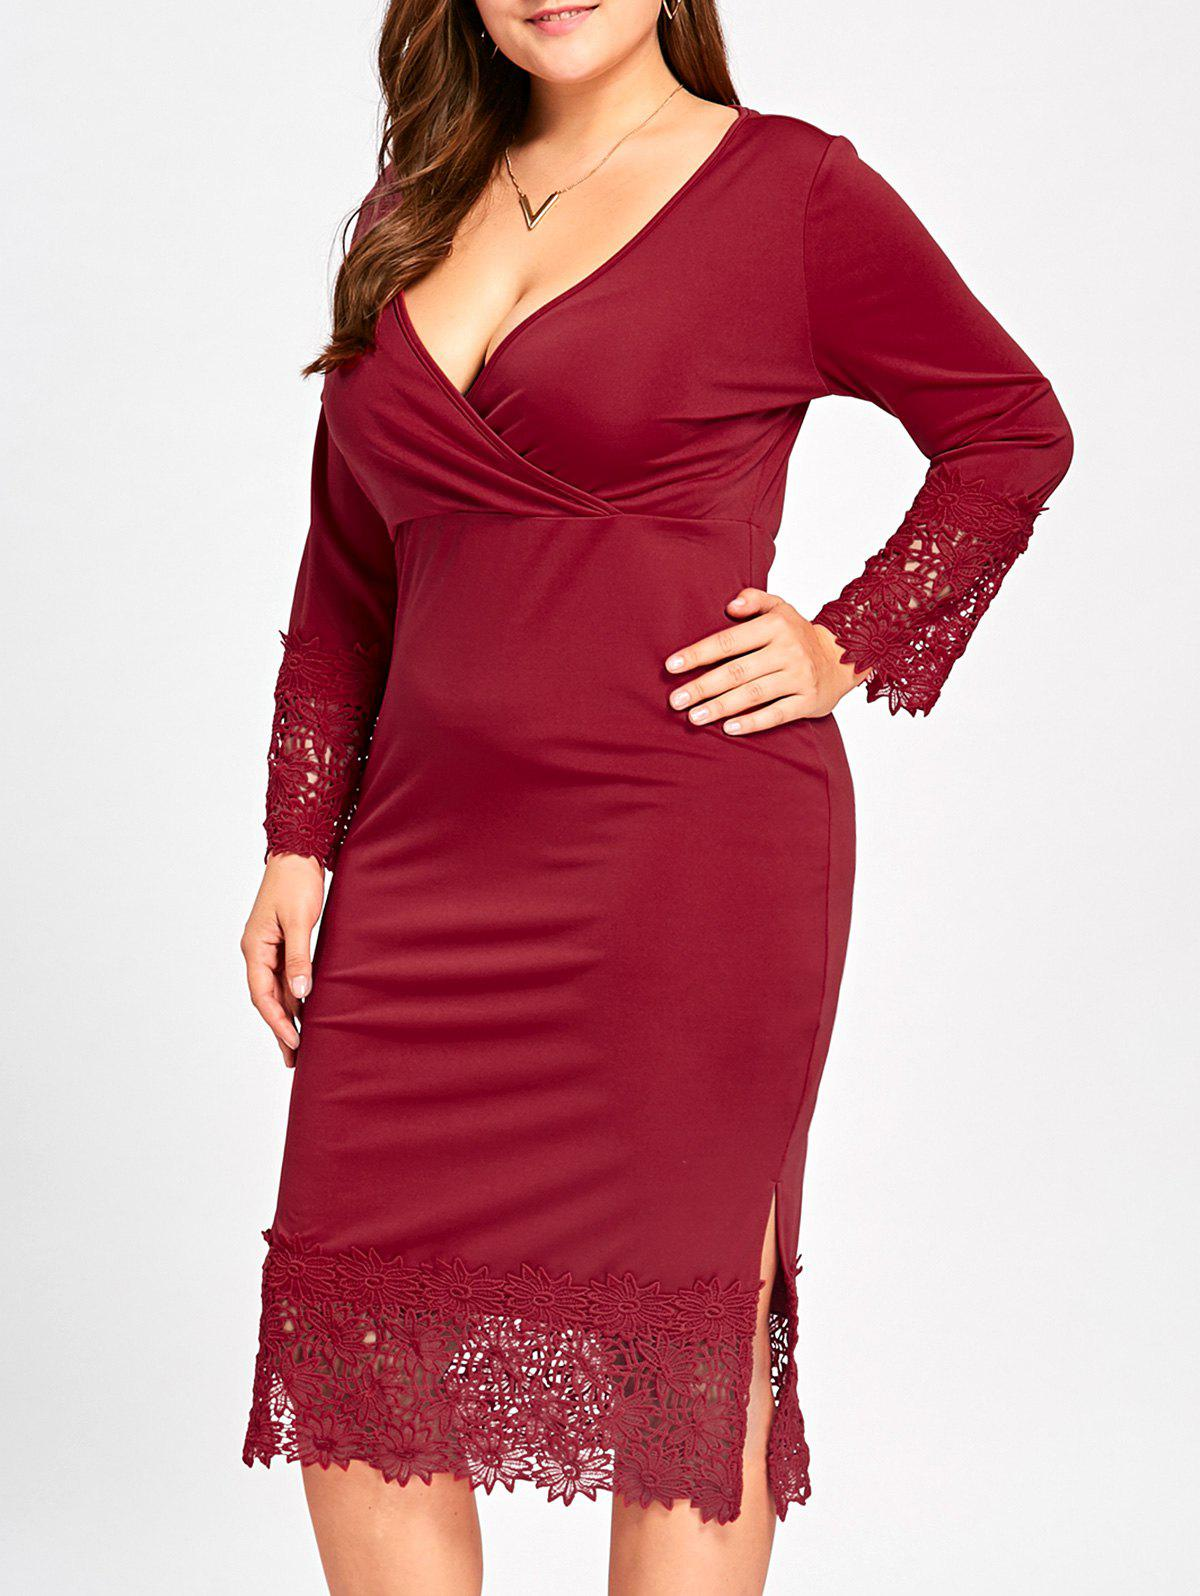 Lace Trim Plus Size Surplice Dress - Rouge vineux 3XL